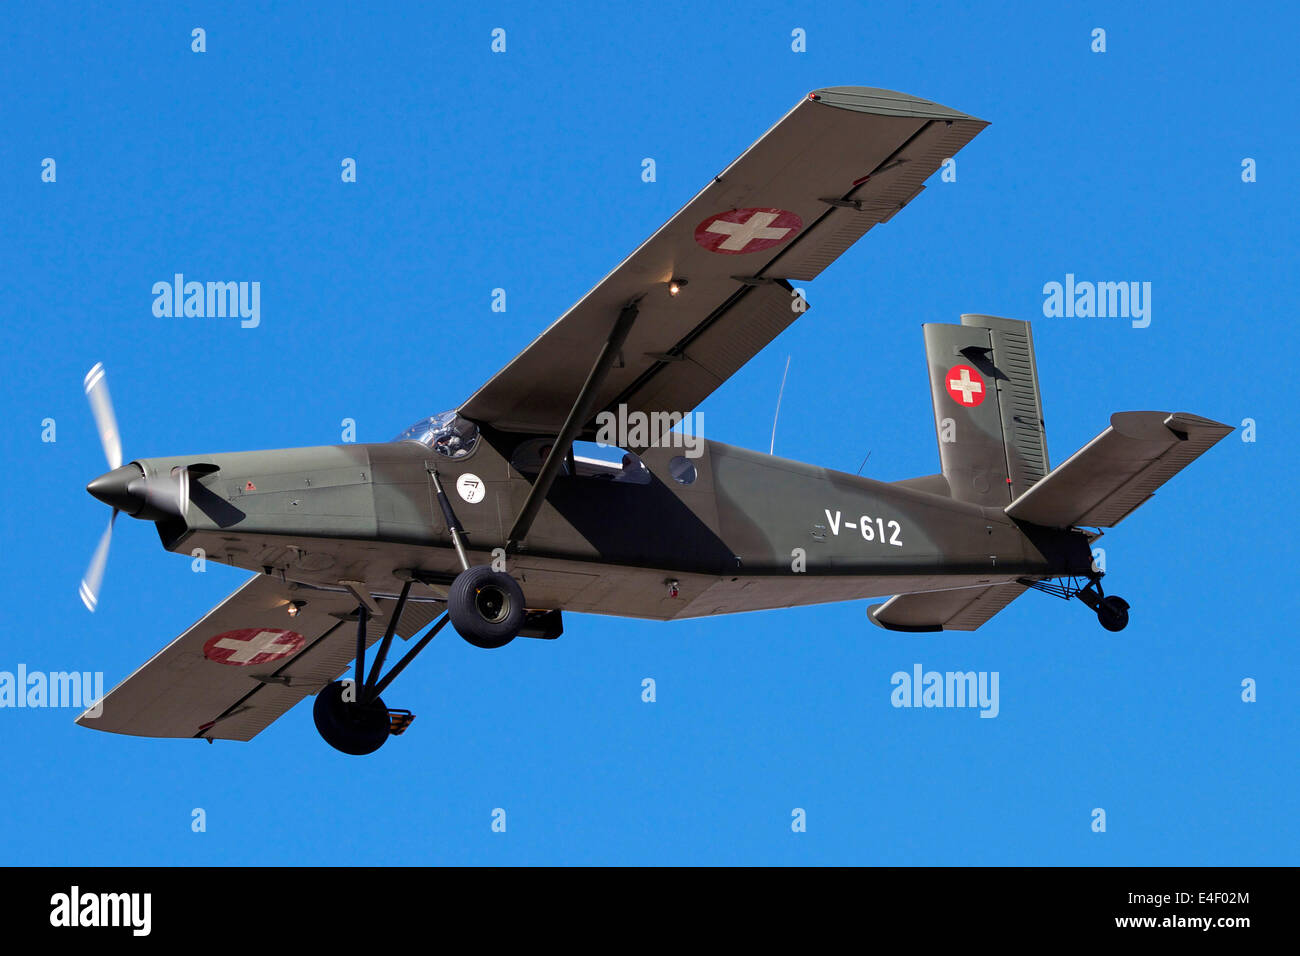 A Pilatus PC-6 of the Swiss Air Force in flight over Switzerland. - Stock Image